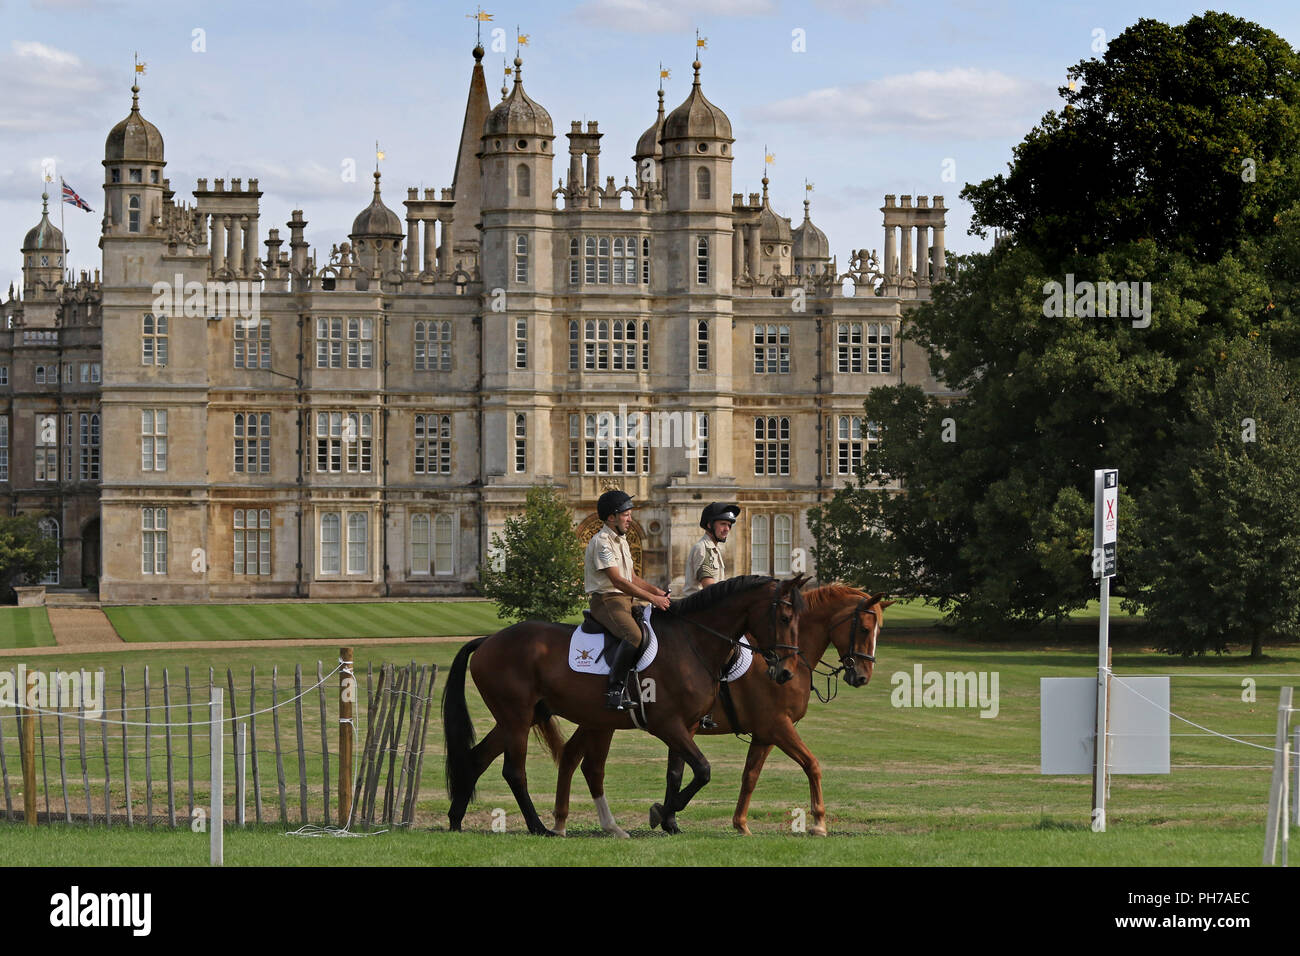 Stamford, UK. 30th Aug 2018. Soldiers of the Kings Troop Royal Horse Artillery (closest to camera) and The Household Cavalry go past Burghley House  on Day 1 of the 3 Day event at the Land Rover Burghley Horse Trials, at Burghley House, Stamford Lincs, on August 30, 2018. Credit: Paul Marriott/Alamy Live News - Stock Image